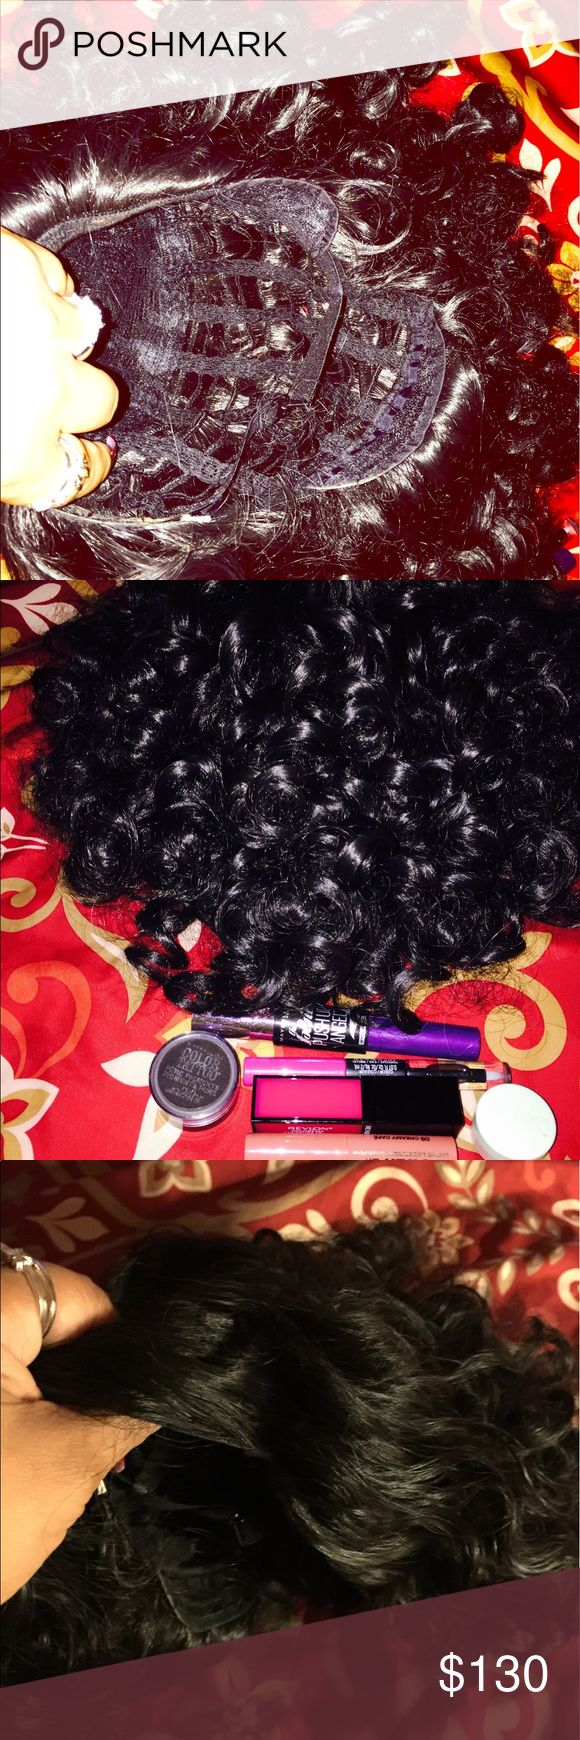 Full curly wig and makeup bundle Hello my beautiful ladies here you're looking at full curly virgin hair full short wig with makeup maybeline eye lash,Clinique shimmer,color tattoo pigment eye shadow,revlon color stay lipstick and gloss,and Milani power lip gloss NO DEALS OR TRADE!I ship in 24 hours I don't make my customers wait to receive their items HAPPY SHOPPING!! Accessories Hair Accessories